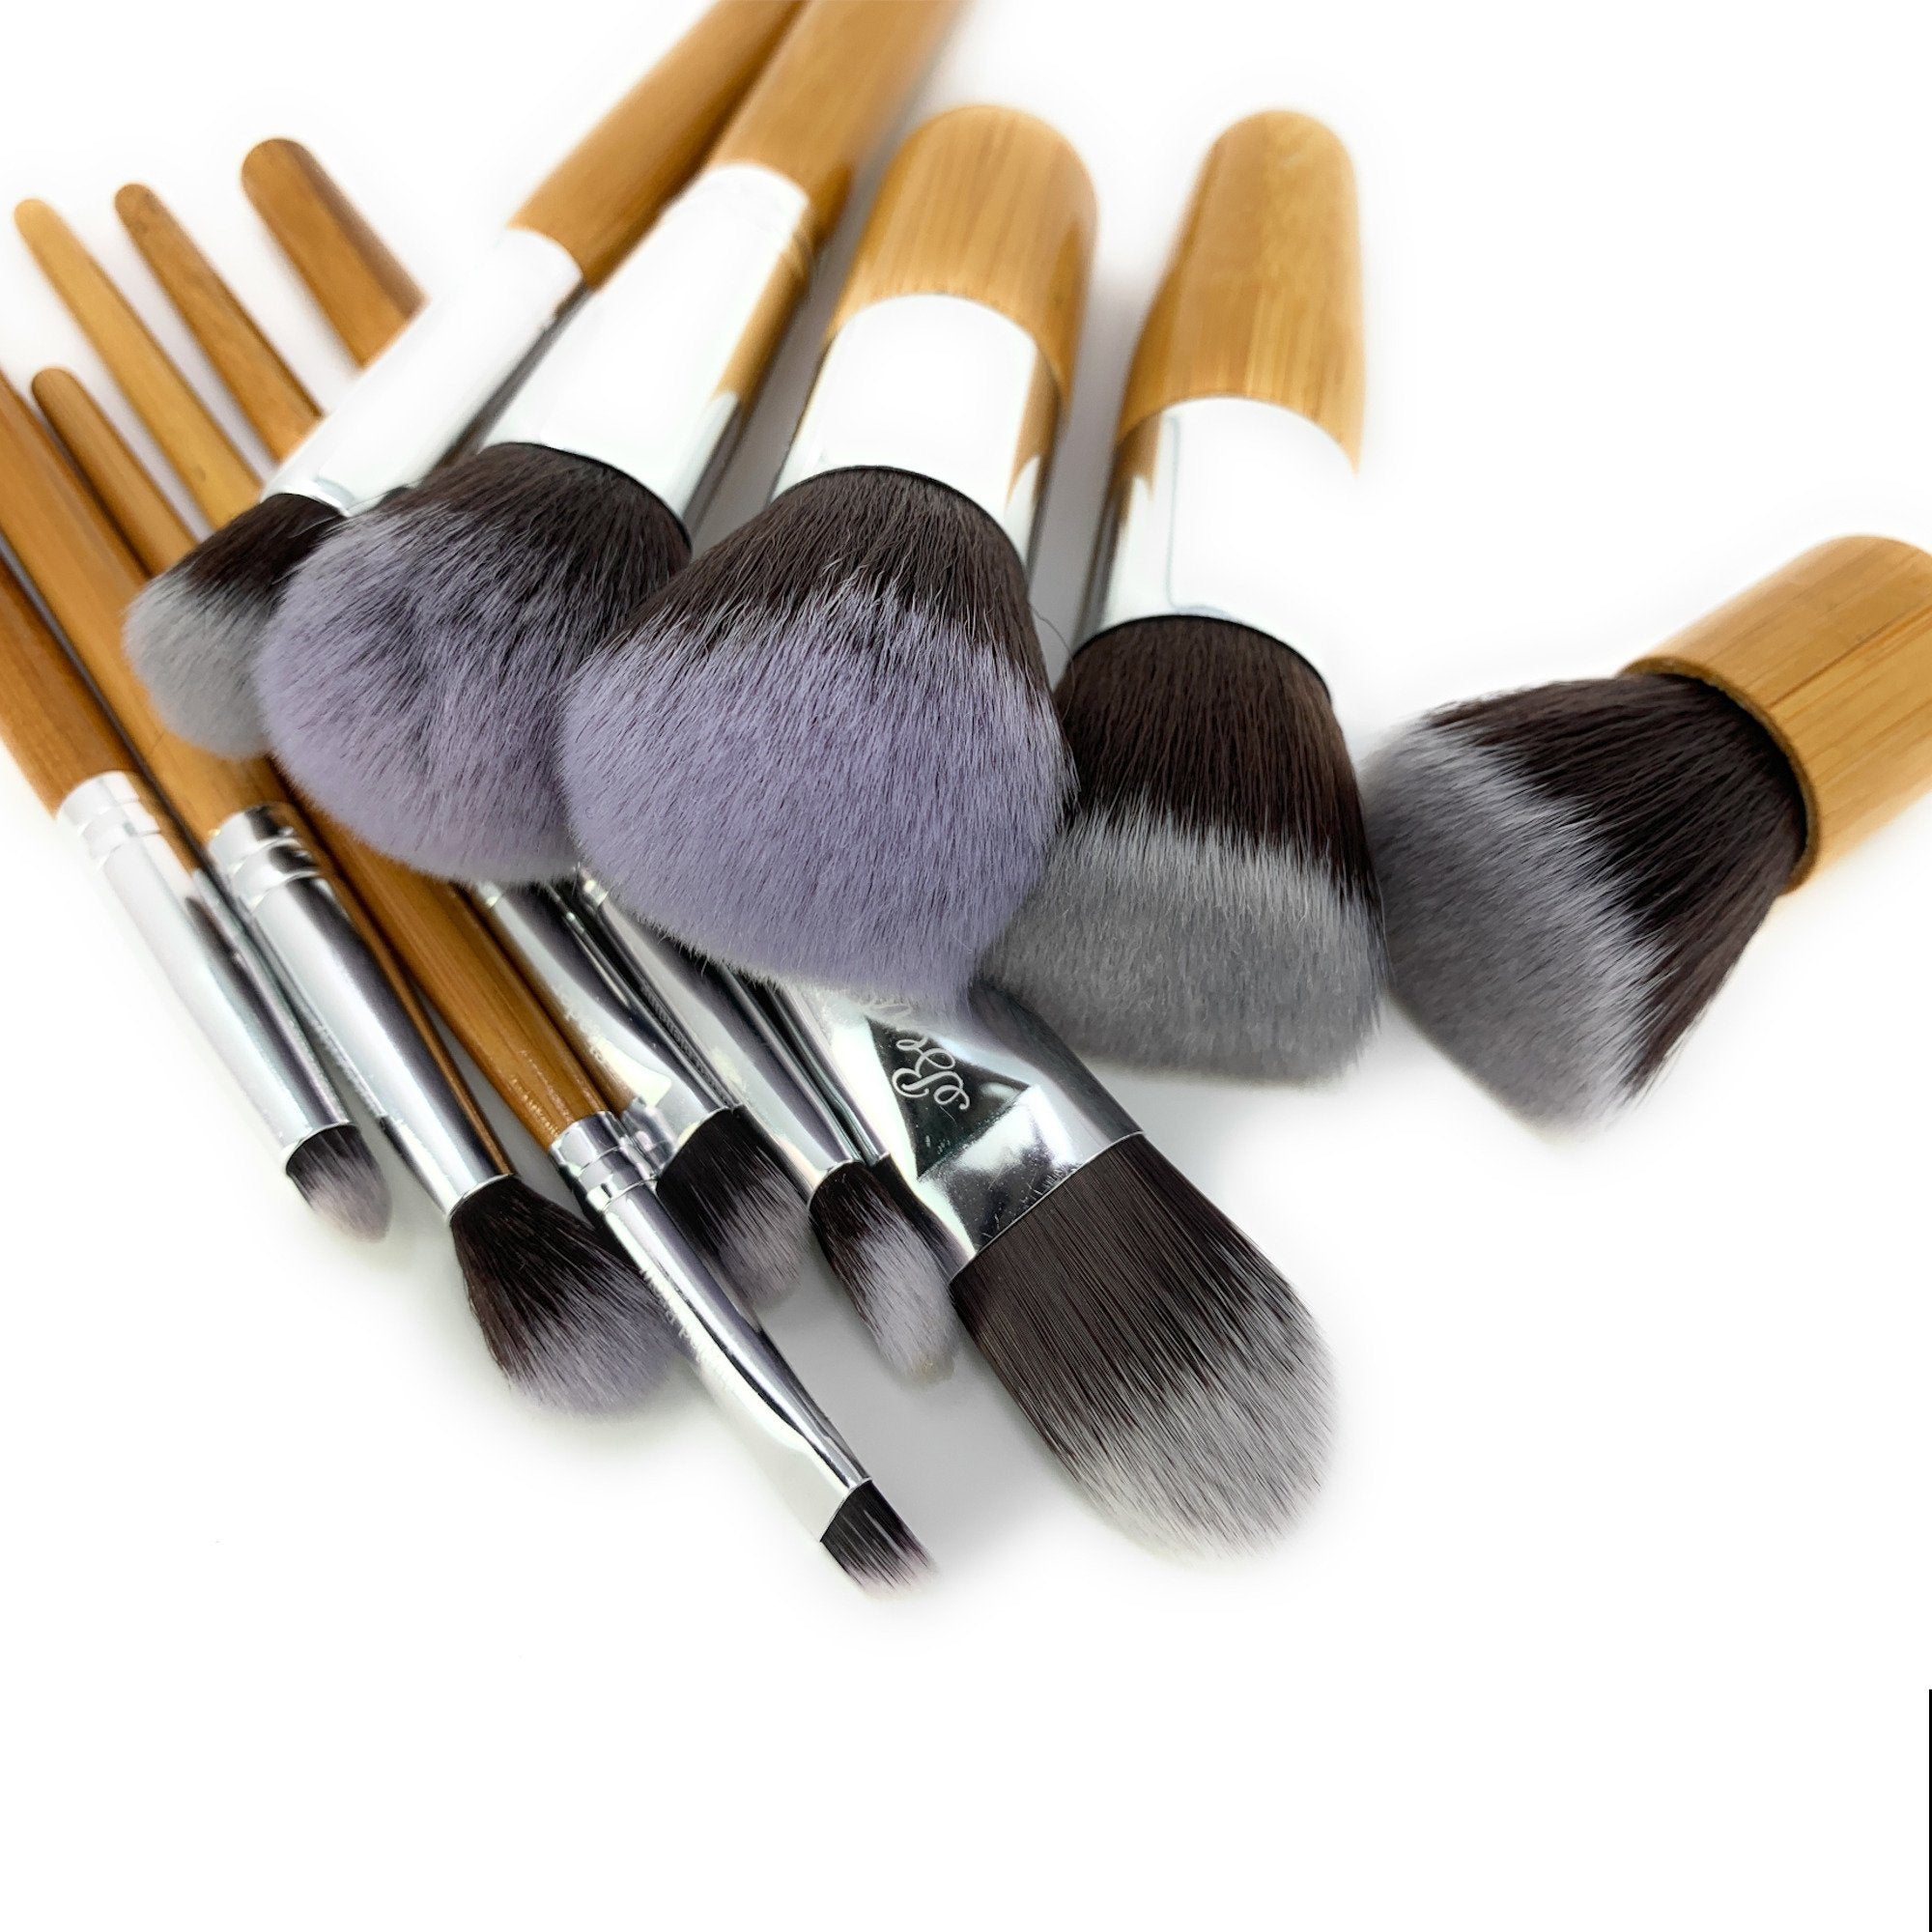 Bamboo Make up brush